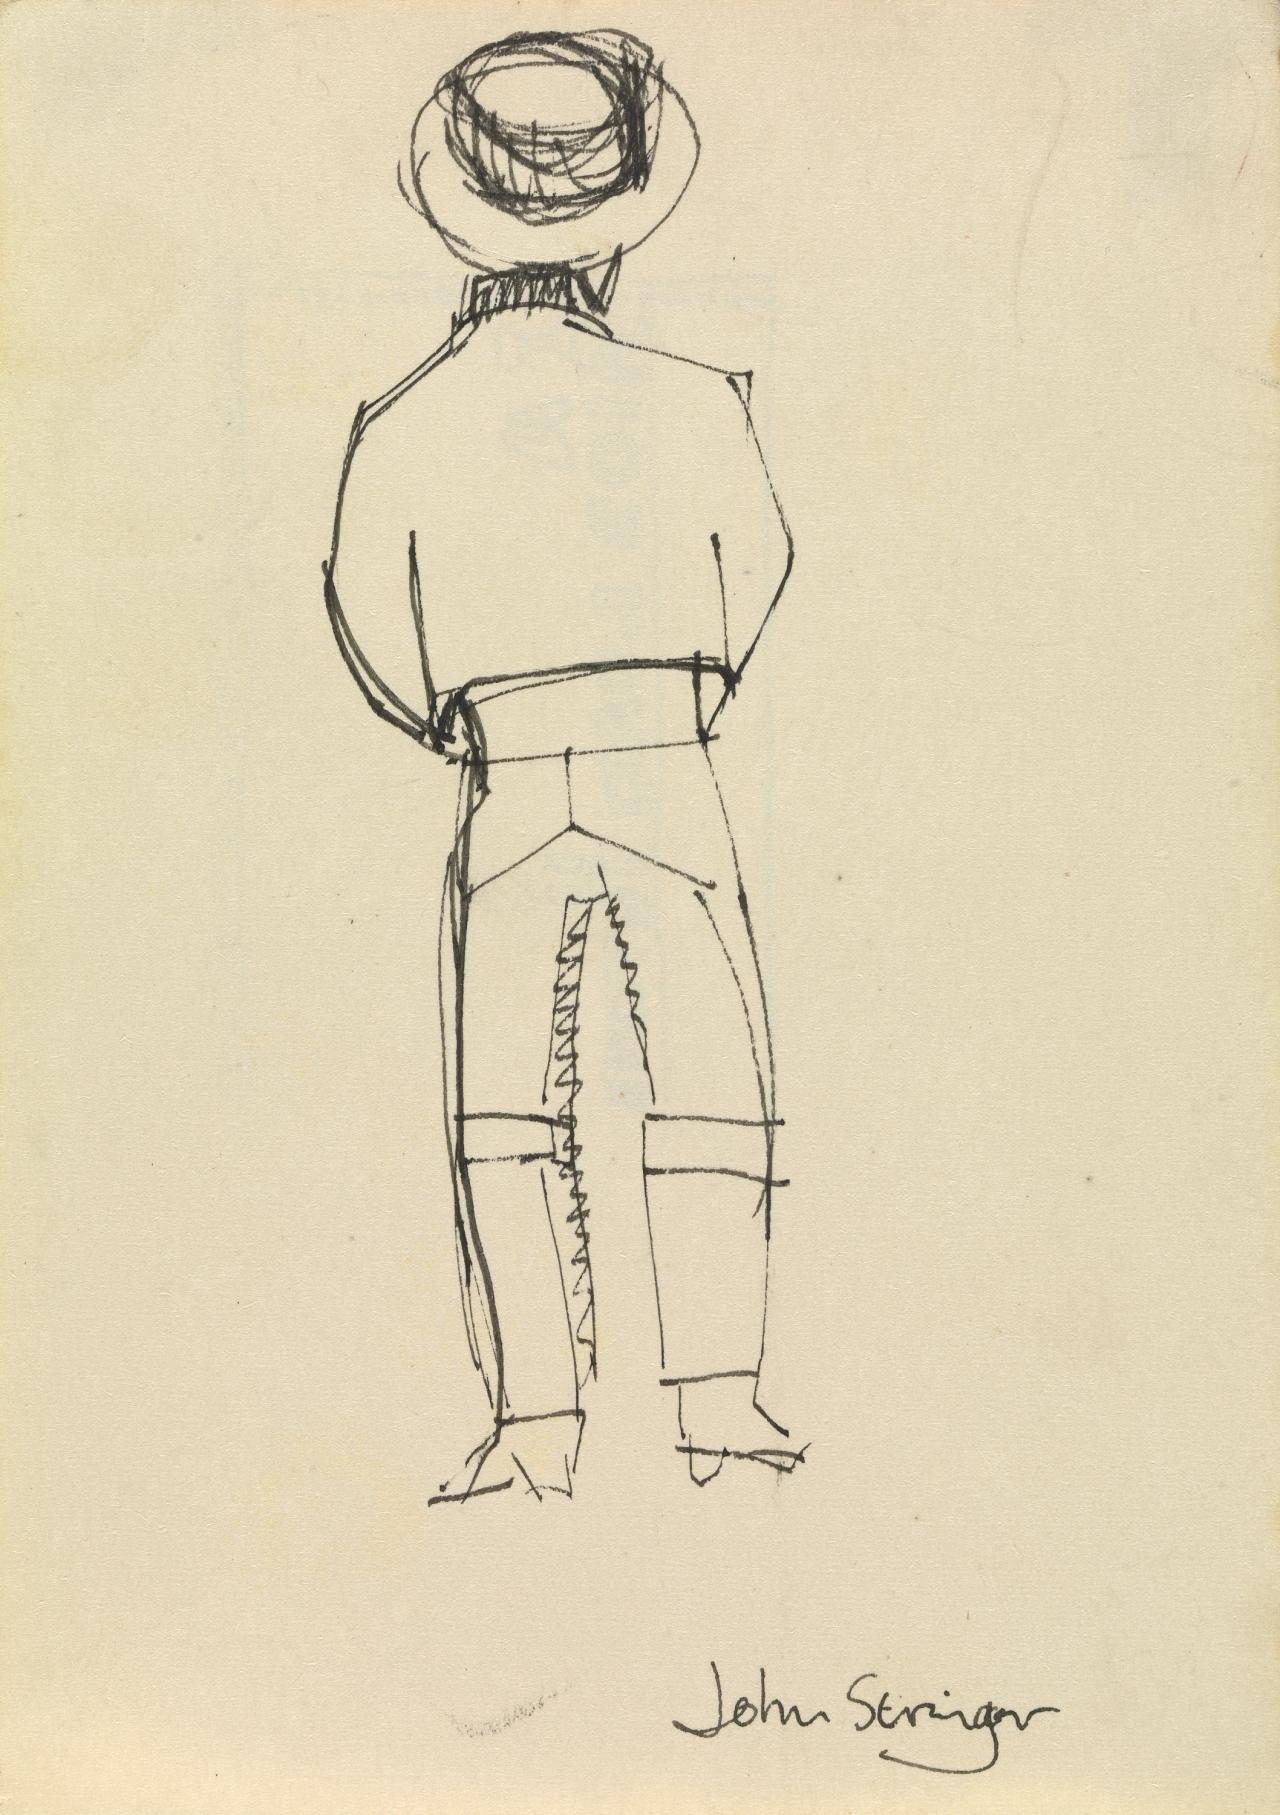 (Rear view of standing man)